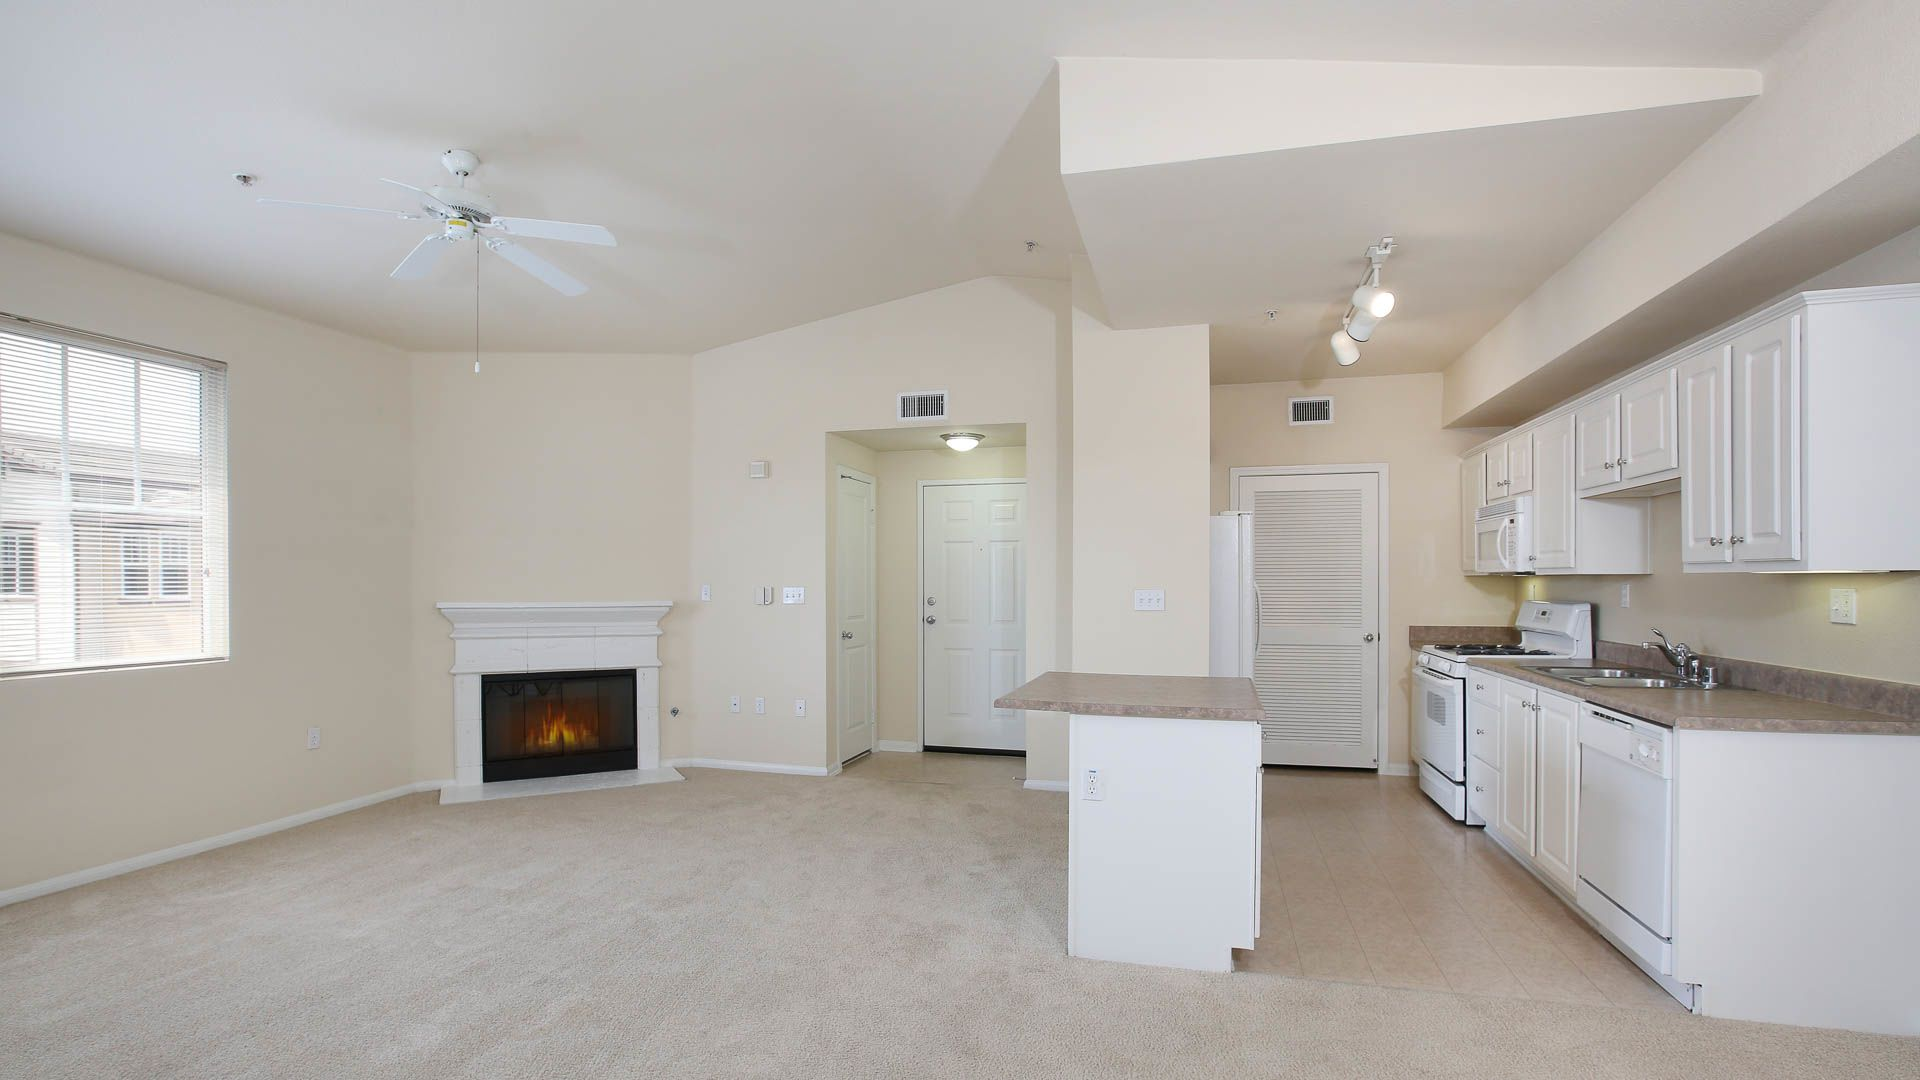 The Reserve at Empire Lakes Apartments - Kitchen and Living Room